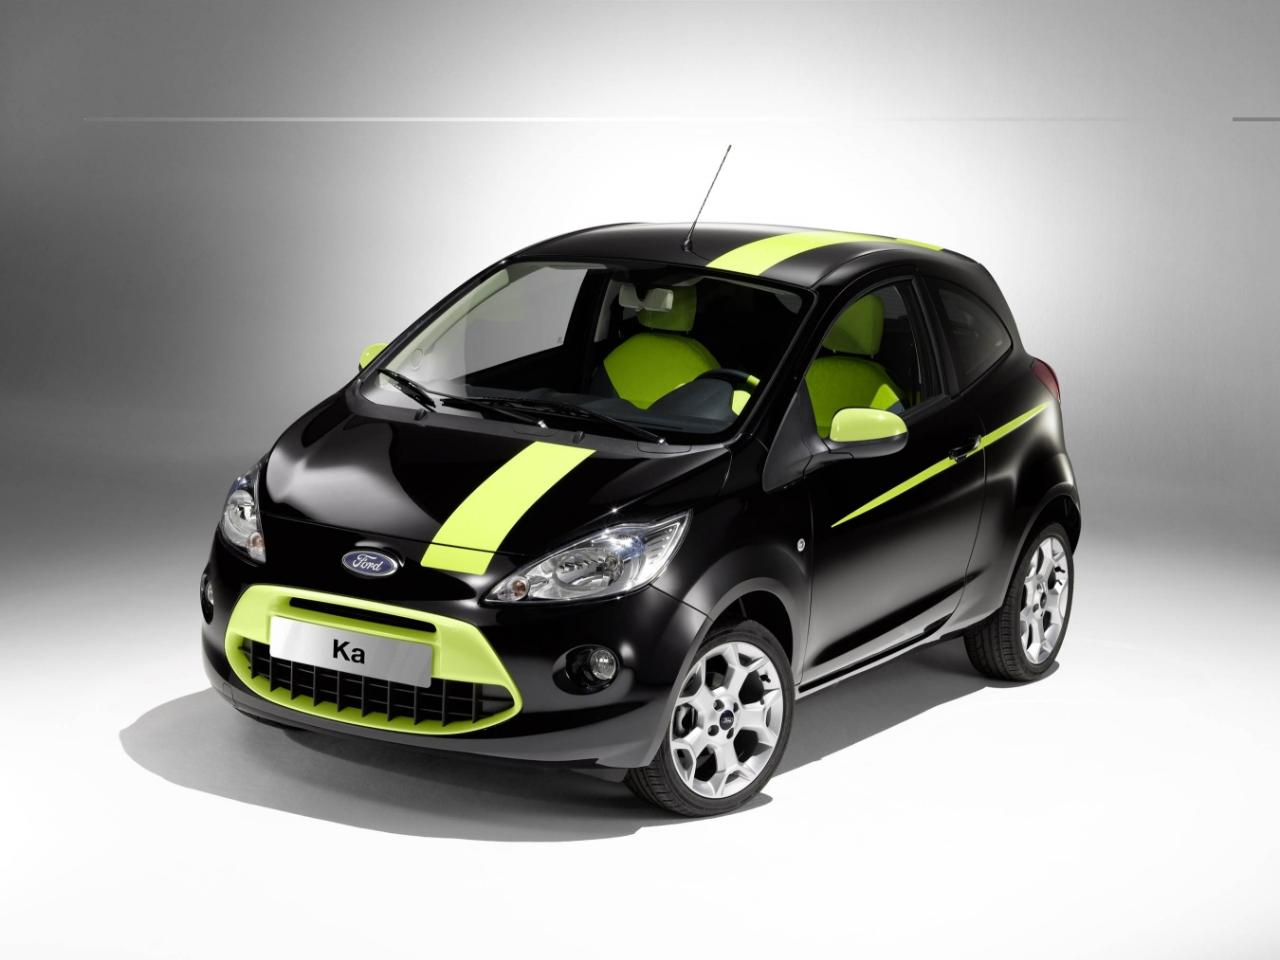 ford ka a segment mini cars. Black Bedroom Furniture Sets. Home Design Ideas